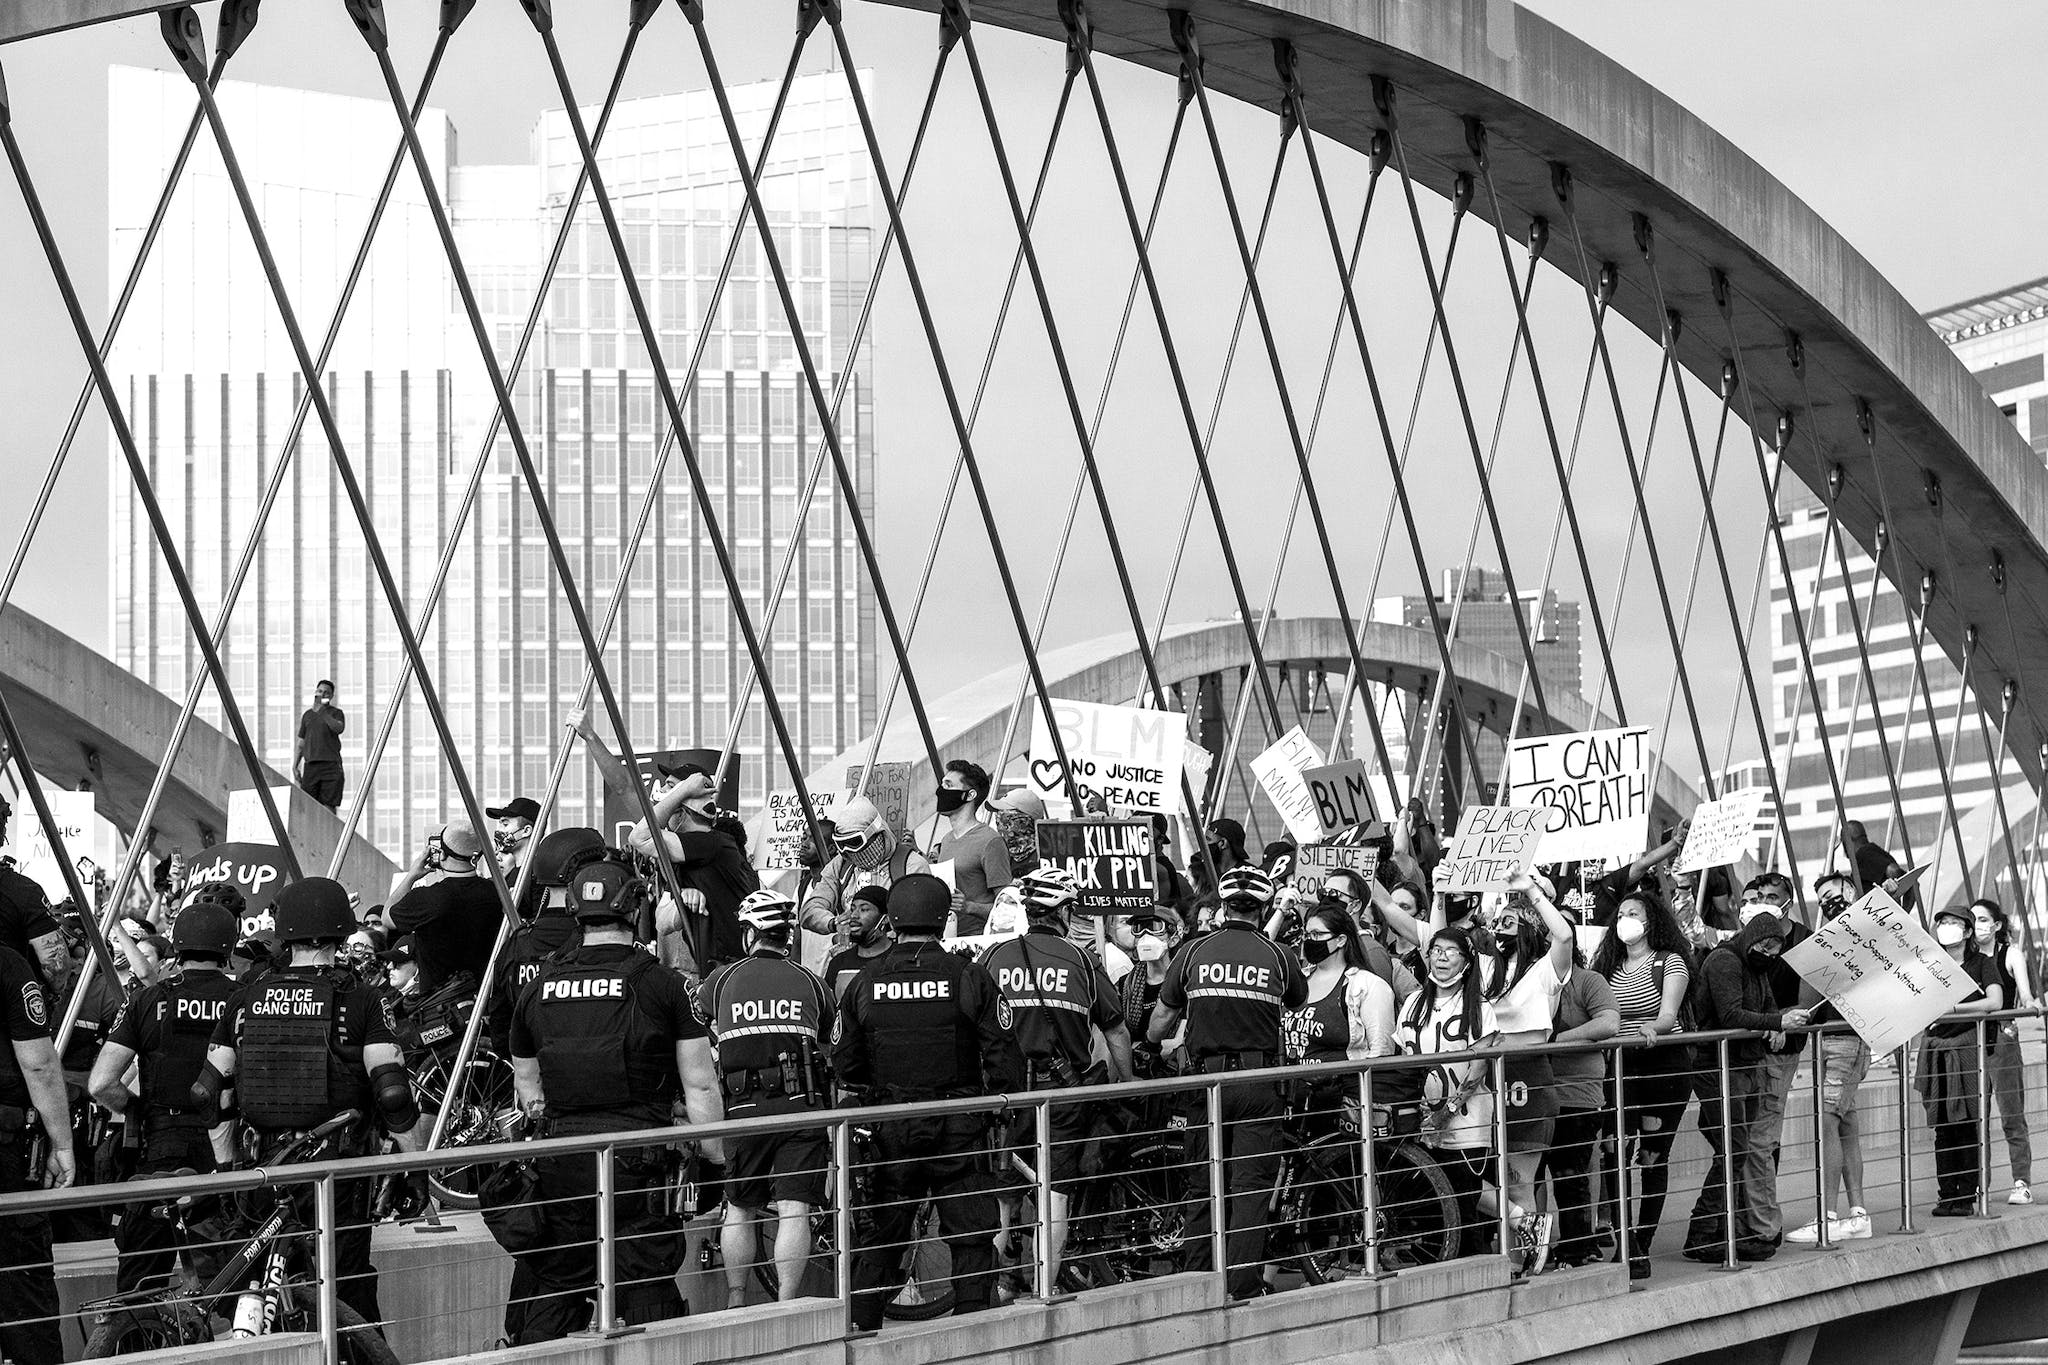 Protesters face the police blockade on the Trinity Bridge in Fort Worth on May 31, 2020.